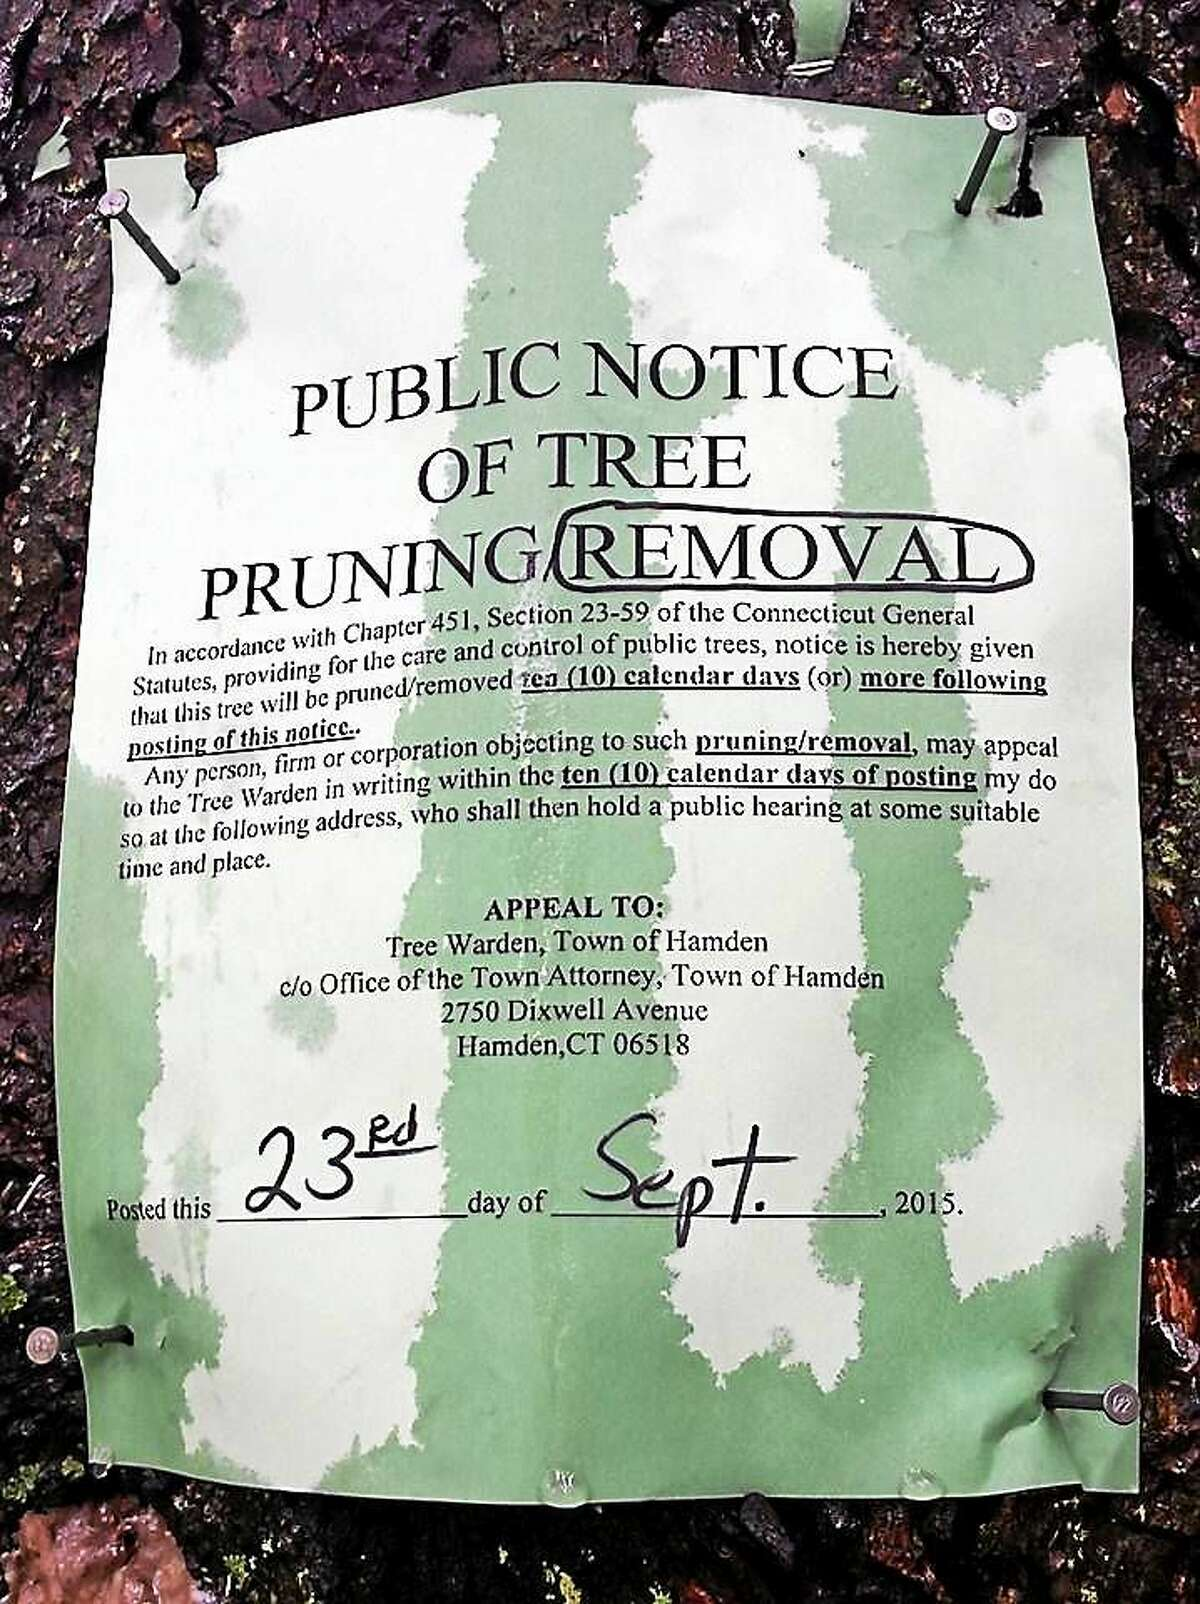 Public Notice of Tree Removal document from the Town of Hamden on the tree near Chris Cozza's home. The photograph was taken by Save Hamden Trees.